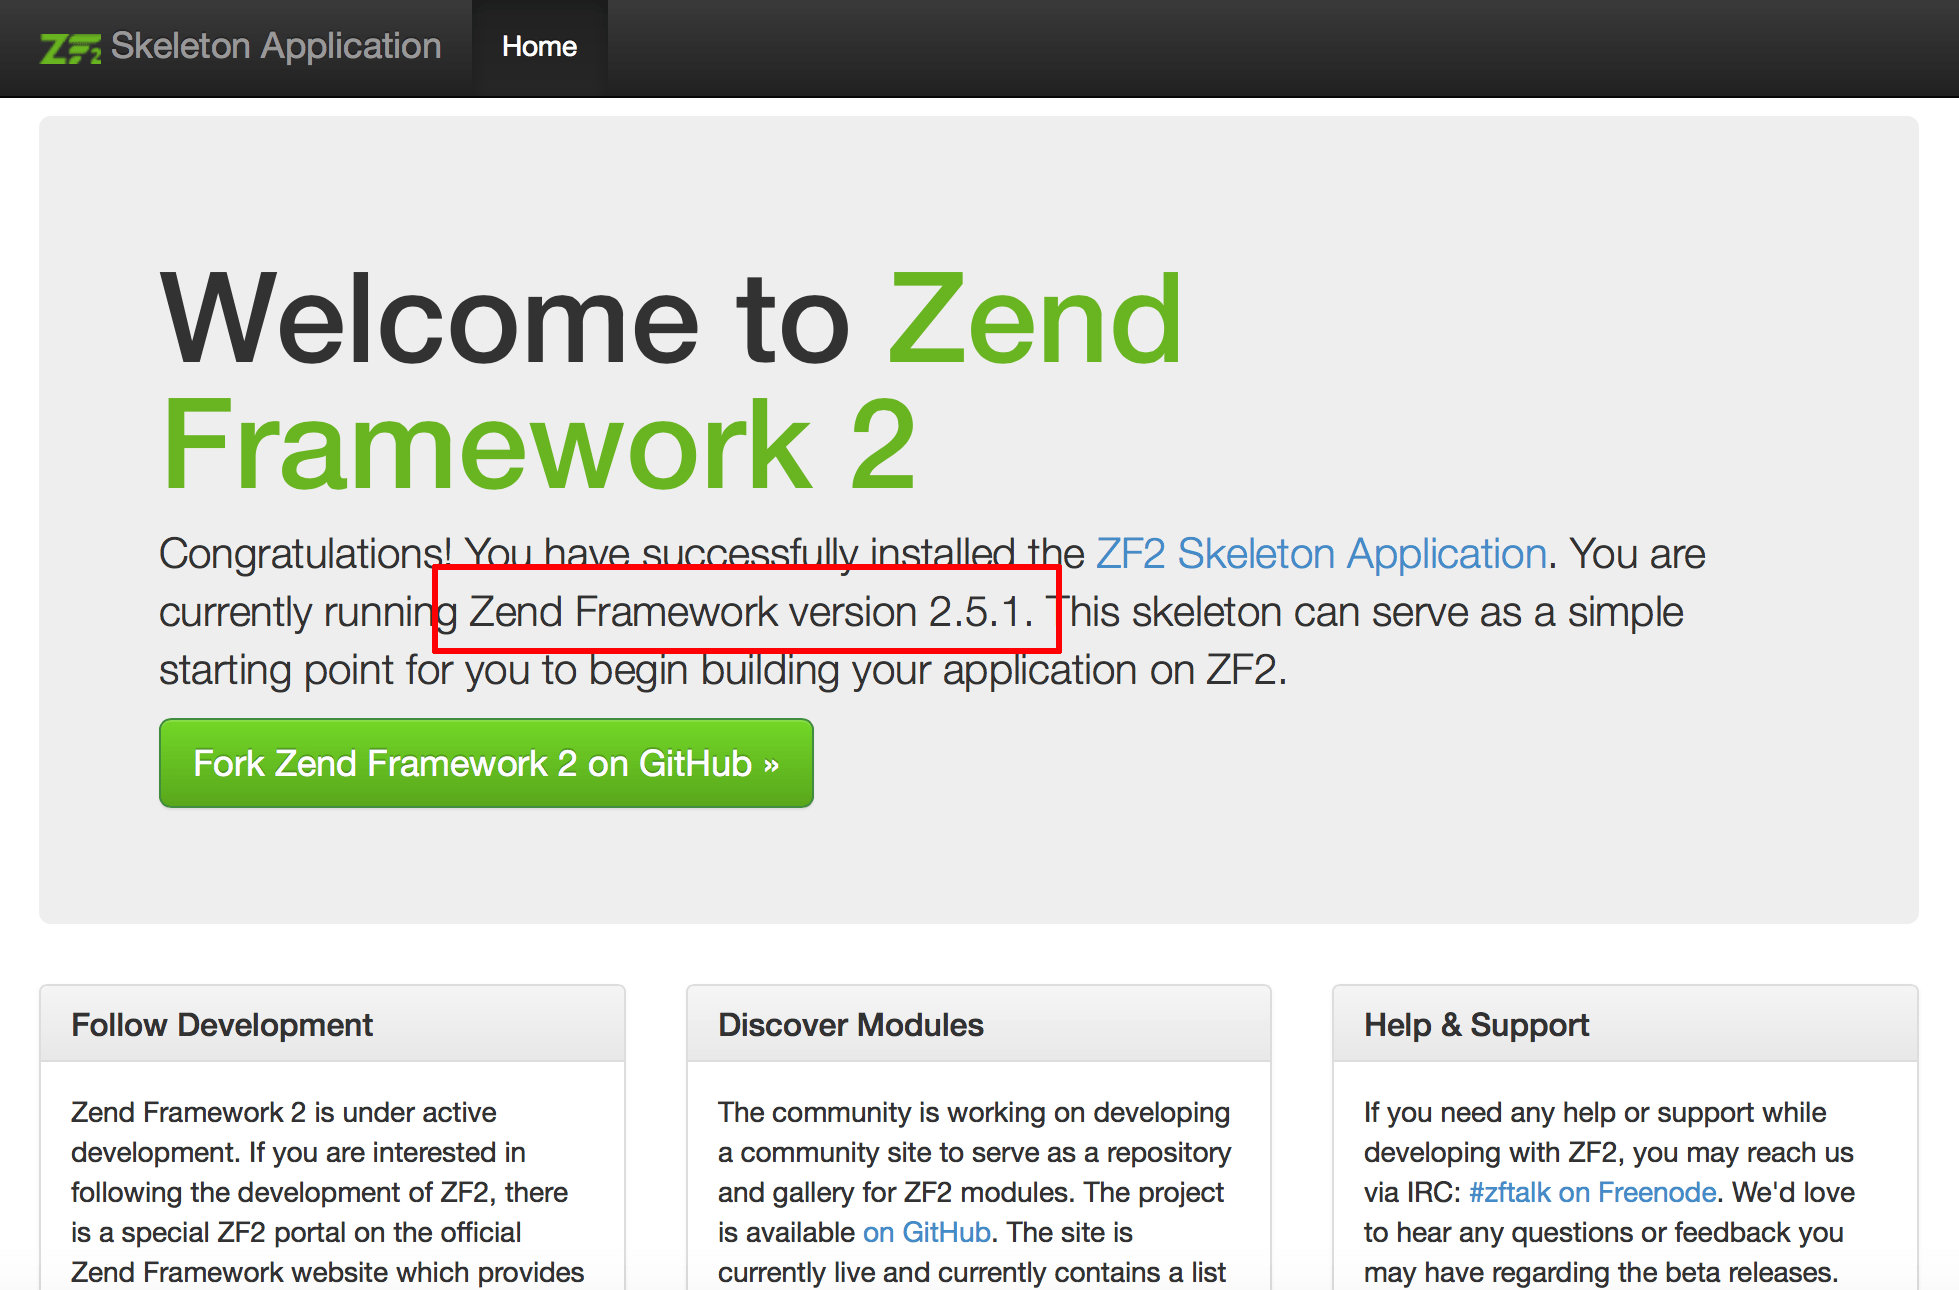 Zend Framework welcome page